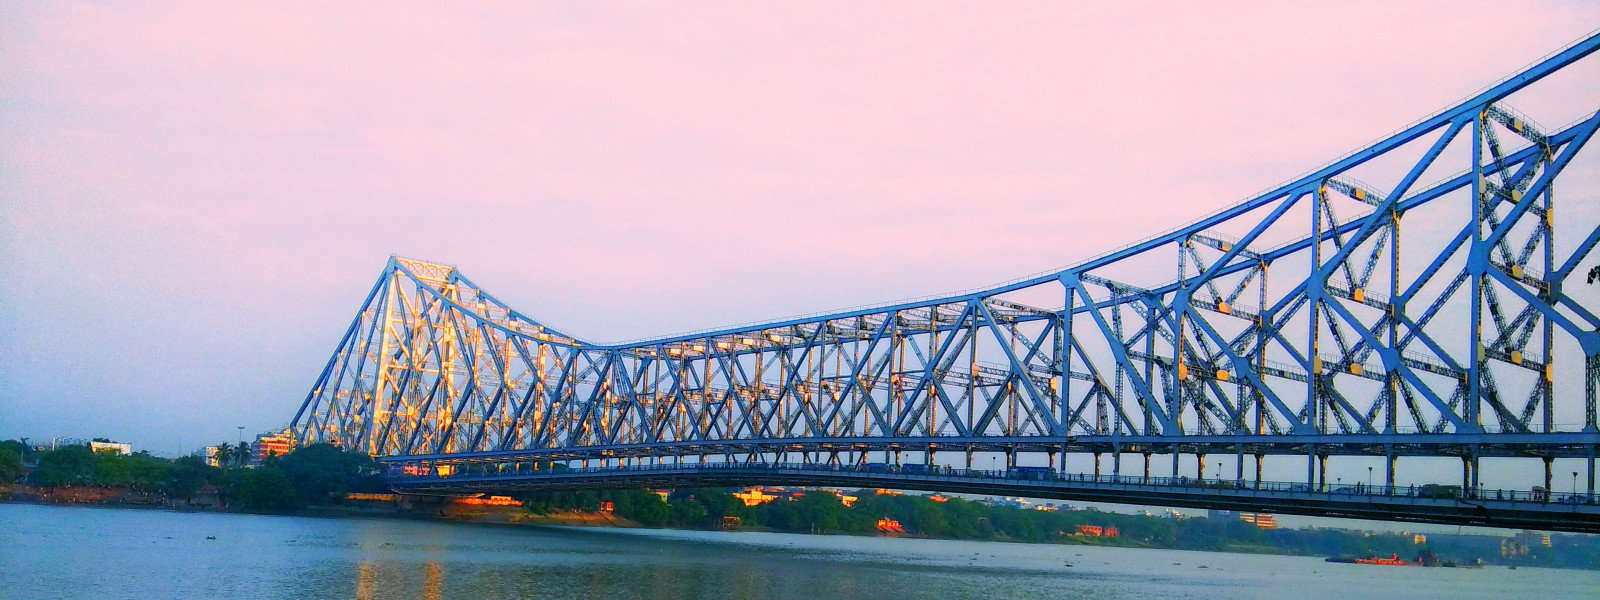 1551095233_jMa5D_howraha_bridge_kolkata_buddha_air